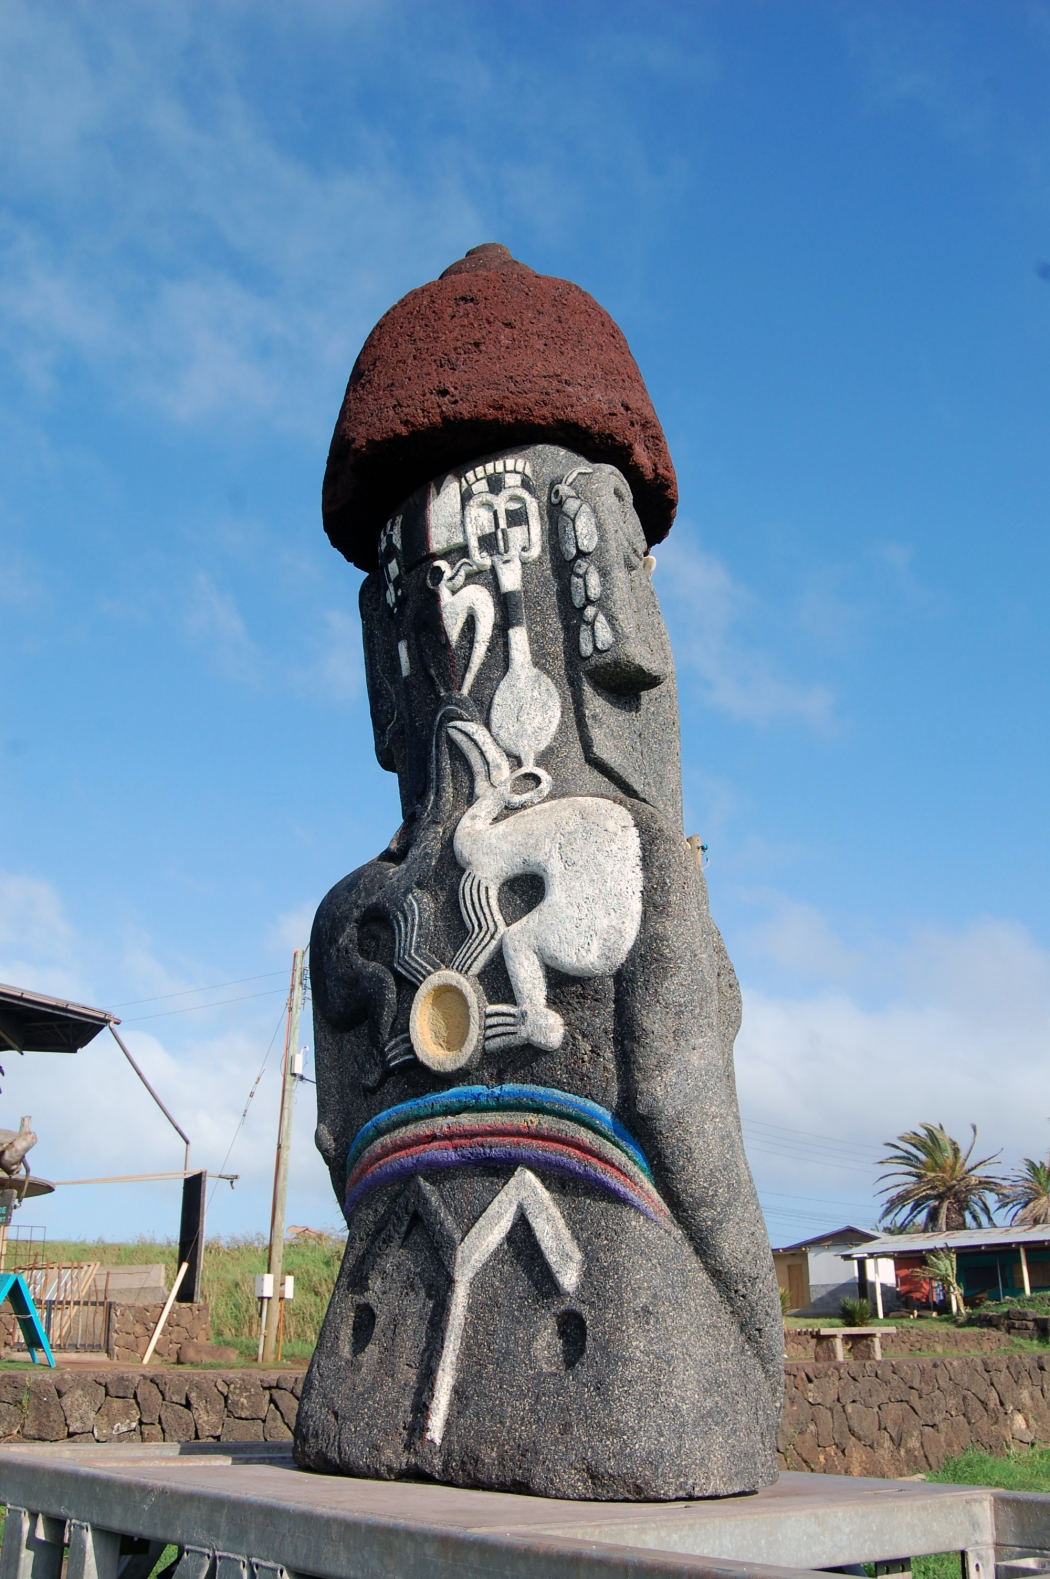 The backs of the moai are intricately carved.  This one displays the Bird Man, one of the main symbols of Easter Island for the traditional competition that took place at Orongo